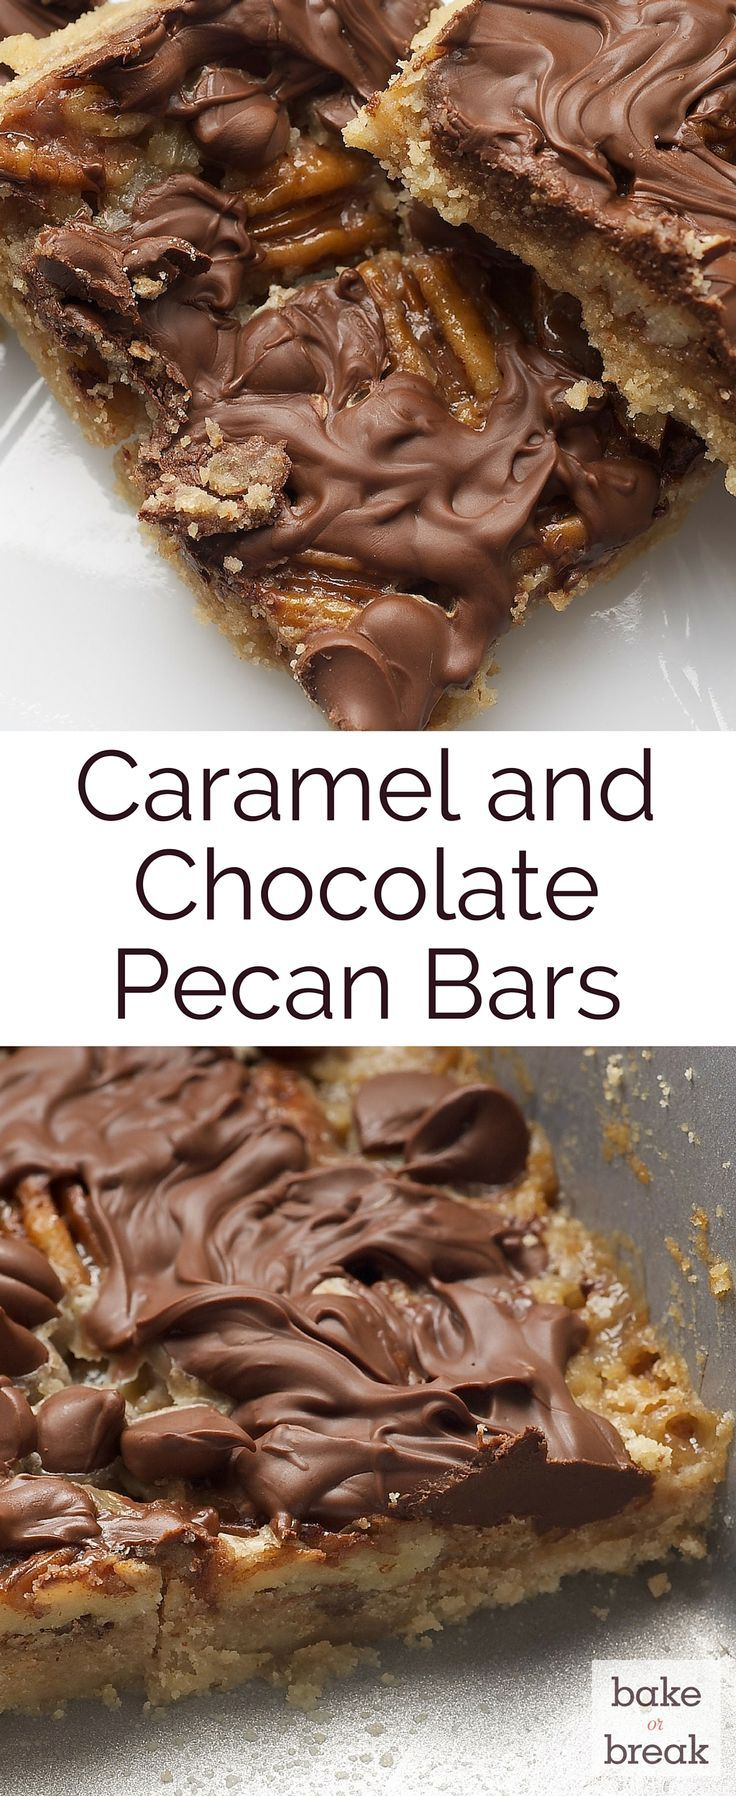 You only need a handful of ingredients to whip up these simple, delicious Caramel and Chocolate Pecan Bars. ~ http://www.bakeorbreak.com